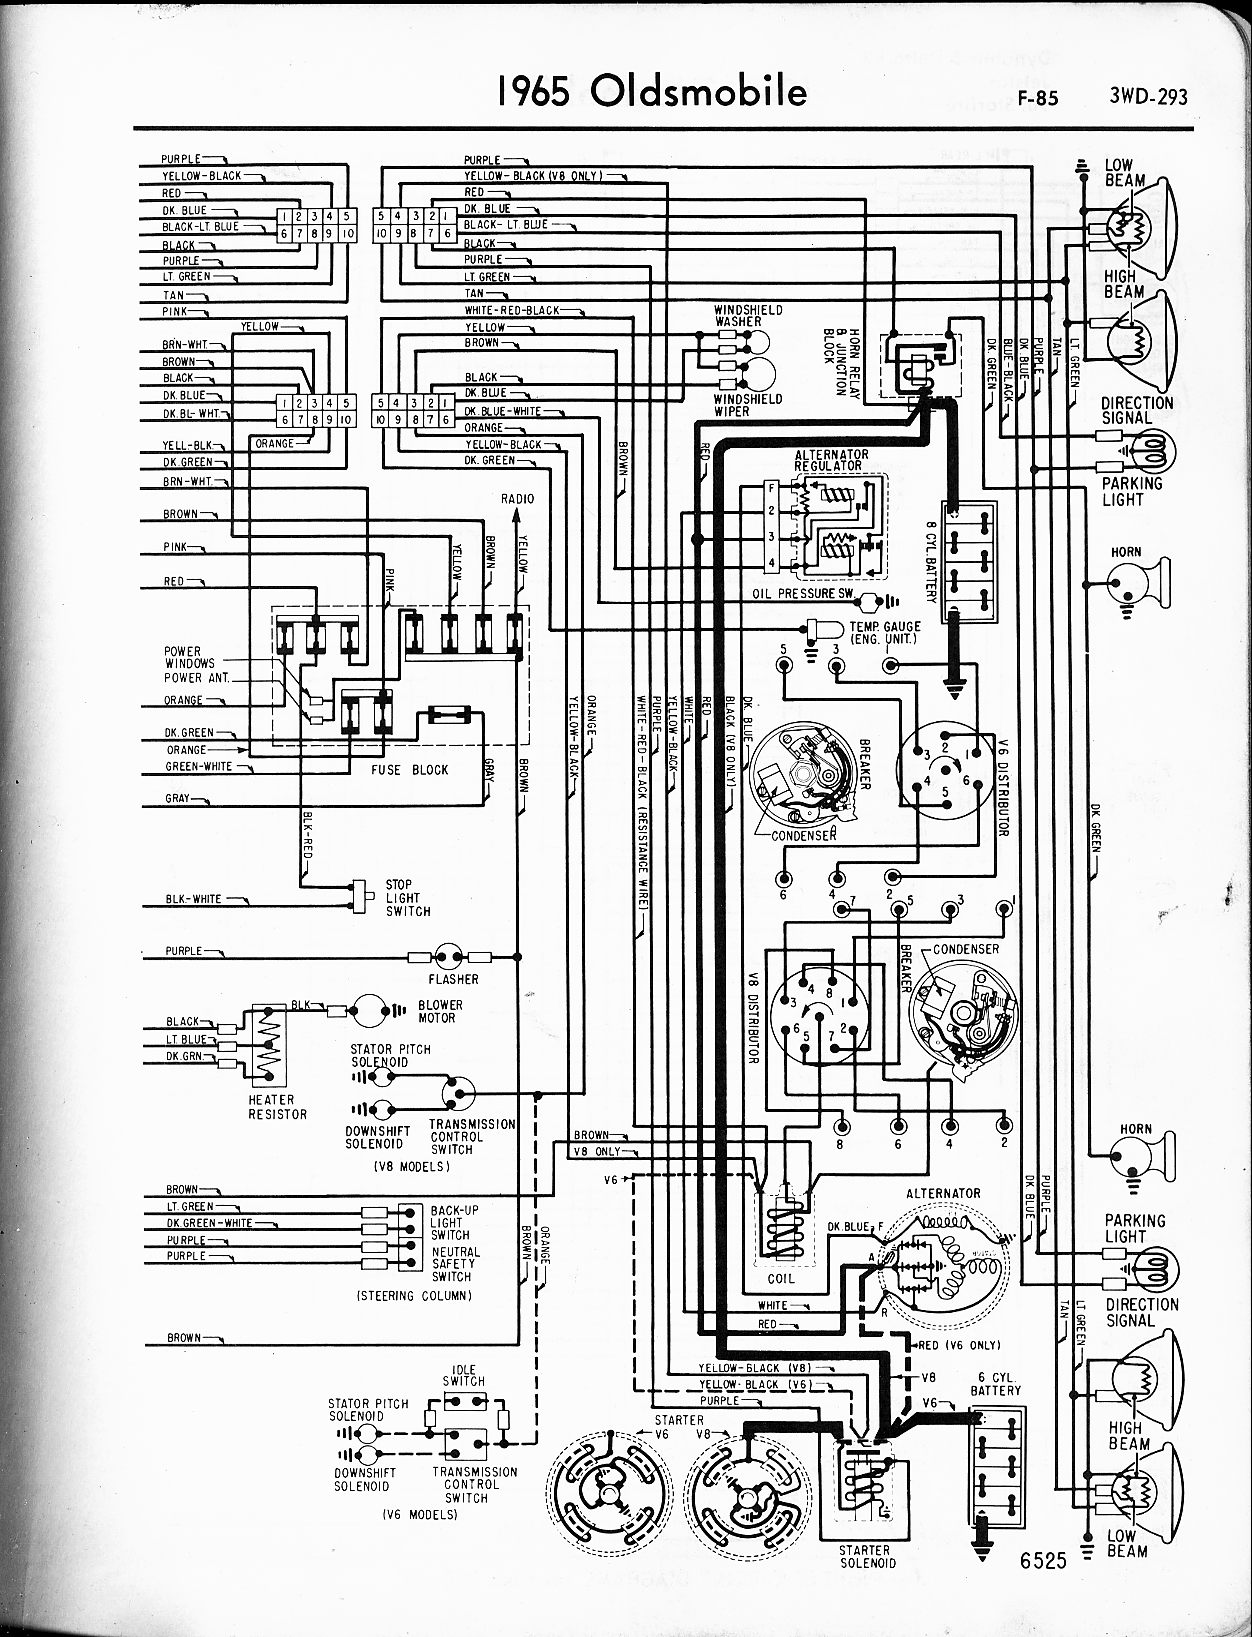 Oldsmobile wiring diagrams - The Old Car Manual Project on